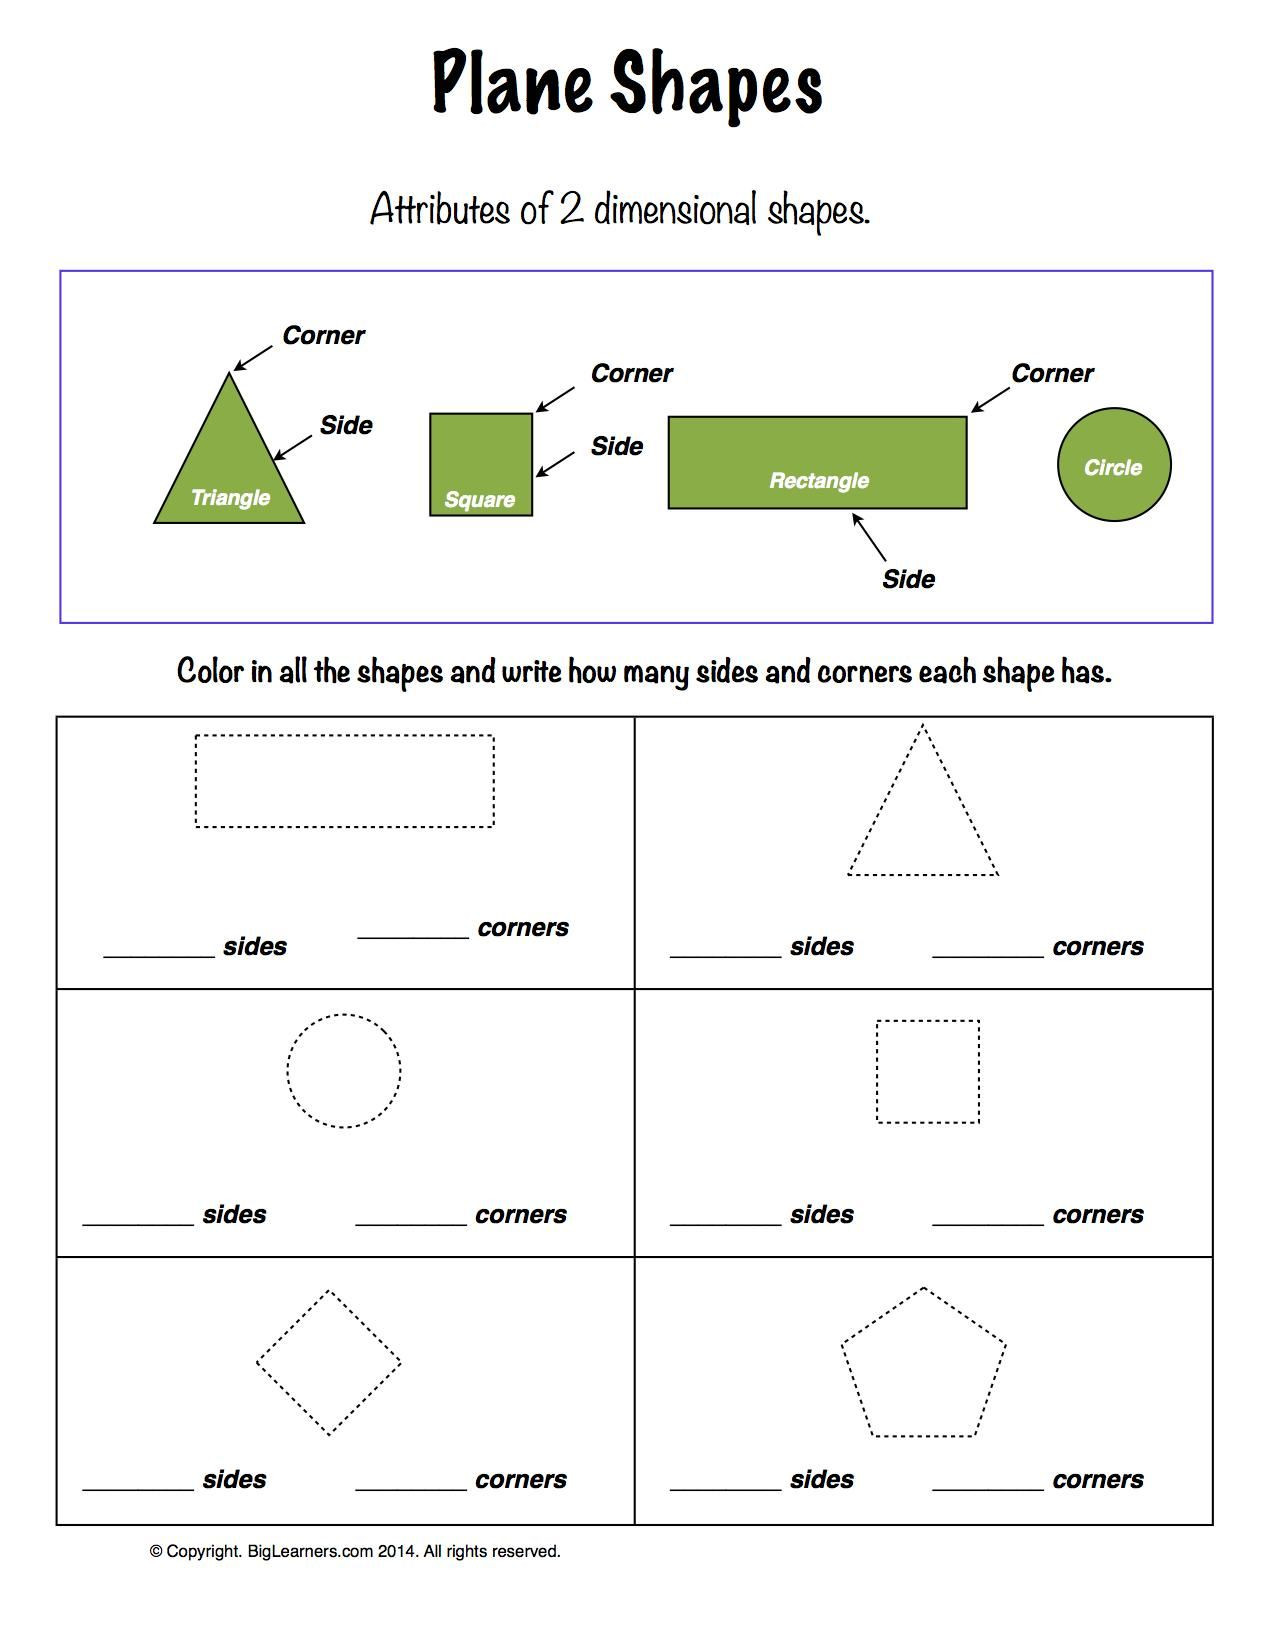 2 Dimensional Shapes Worksheet Worksheet Plane Shapes